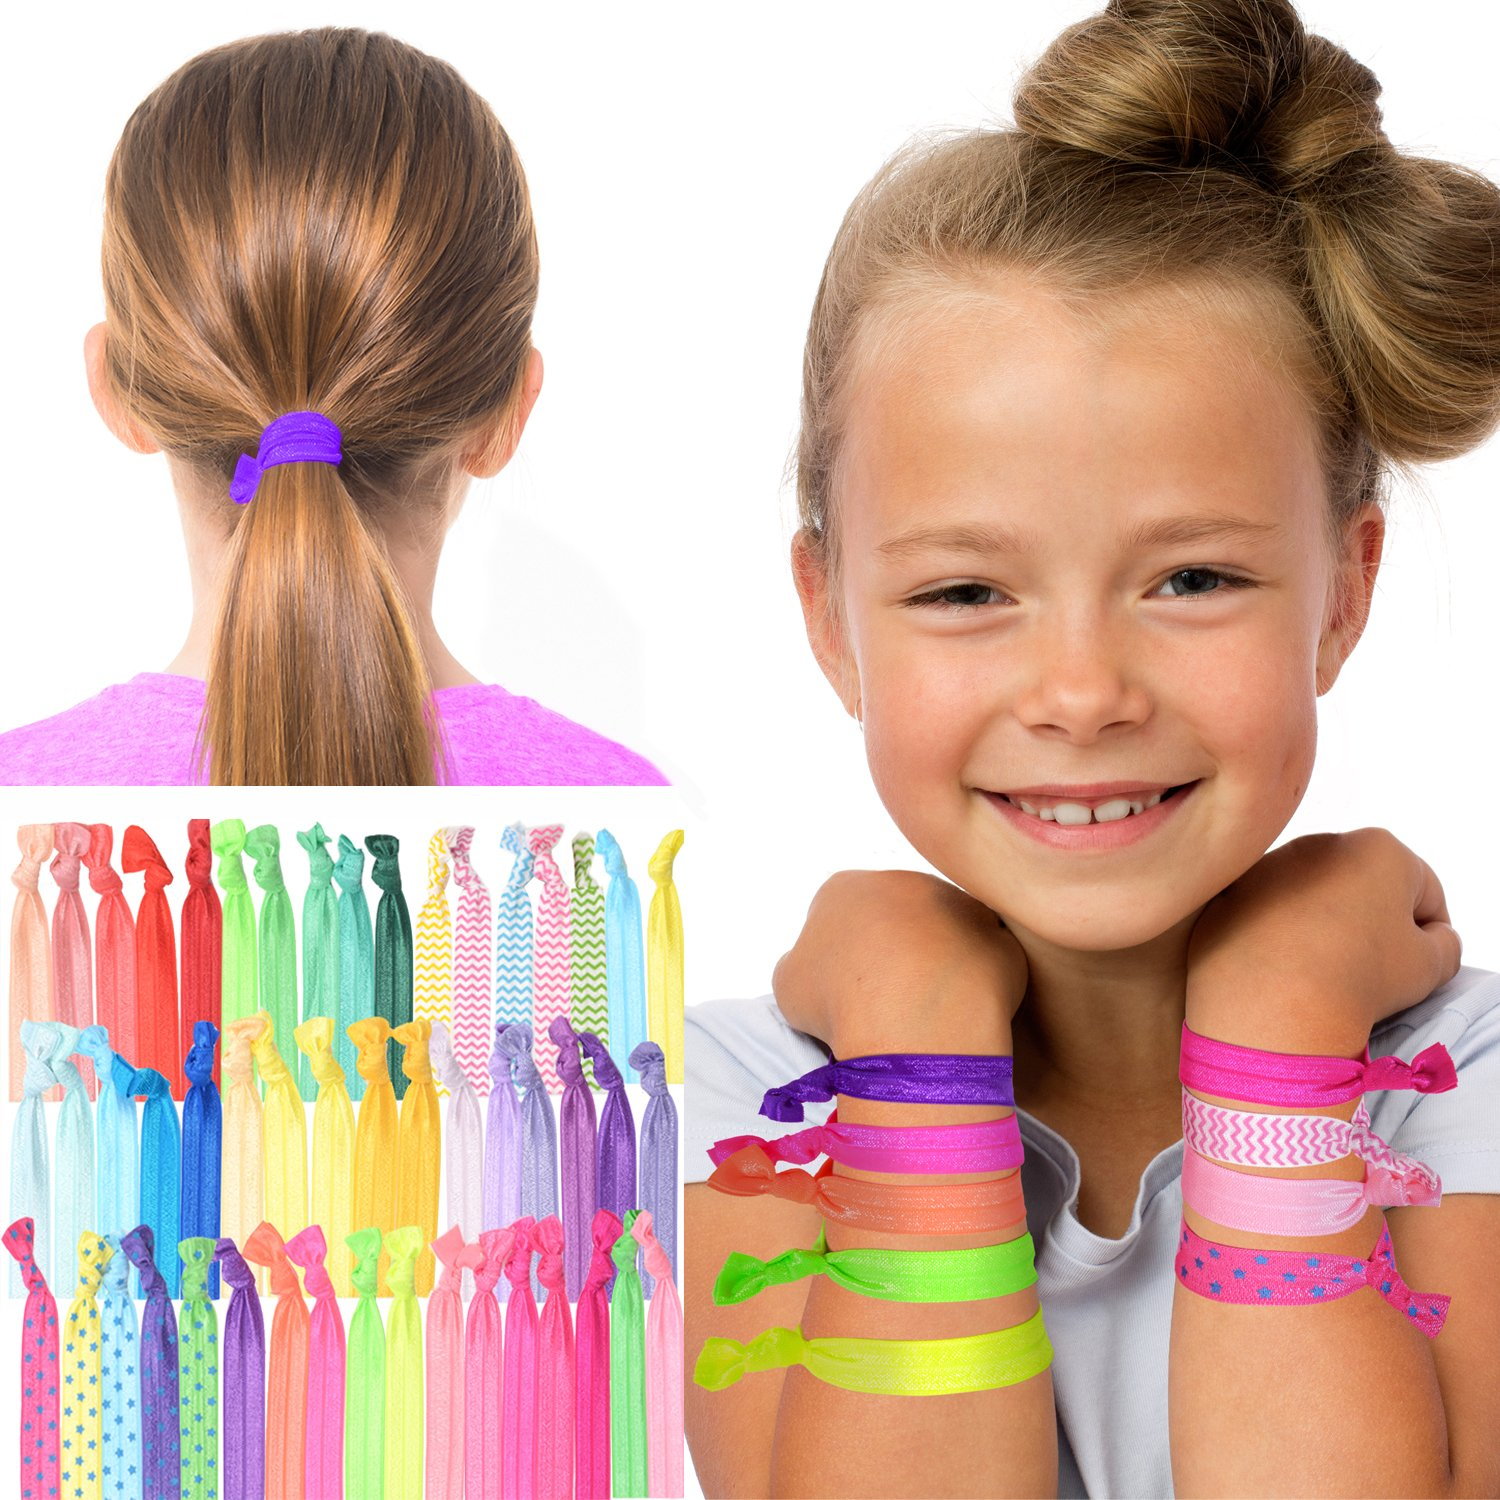 GirlZone GIFTS FOR GIRLS: Colorful No Crease Hair Ties, Huge Pack Of Fun Hair Accessories For Girls - Best Birthday Gifts Present Idea For Girls Age 3 4 5 6 7 8 9 10 11 12 years old.